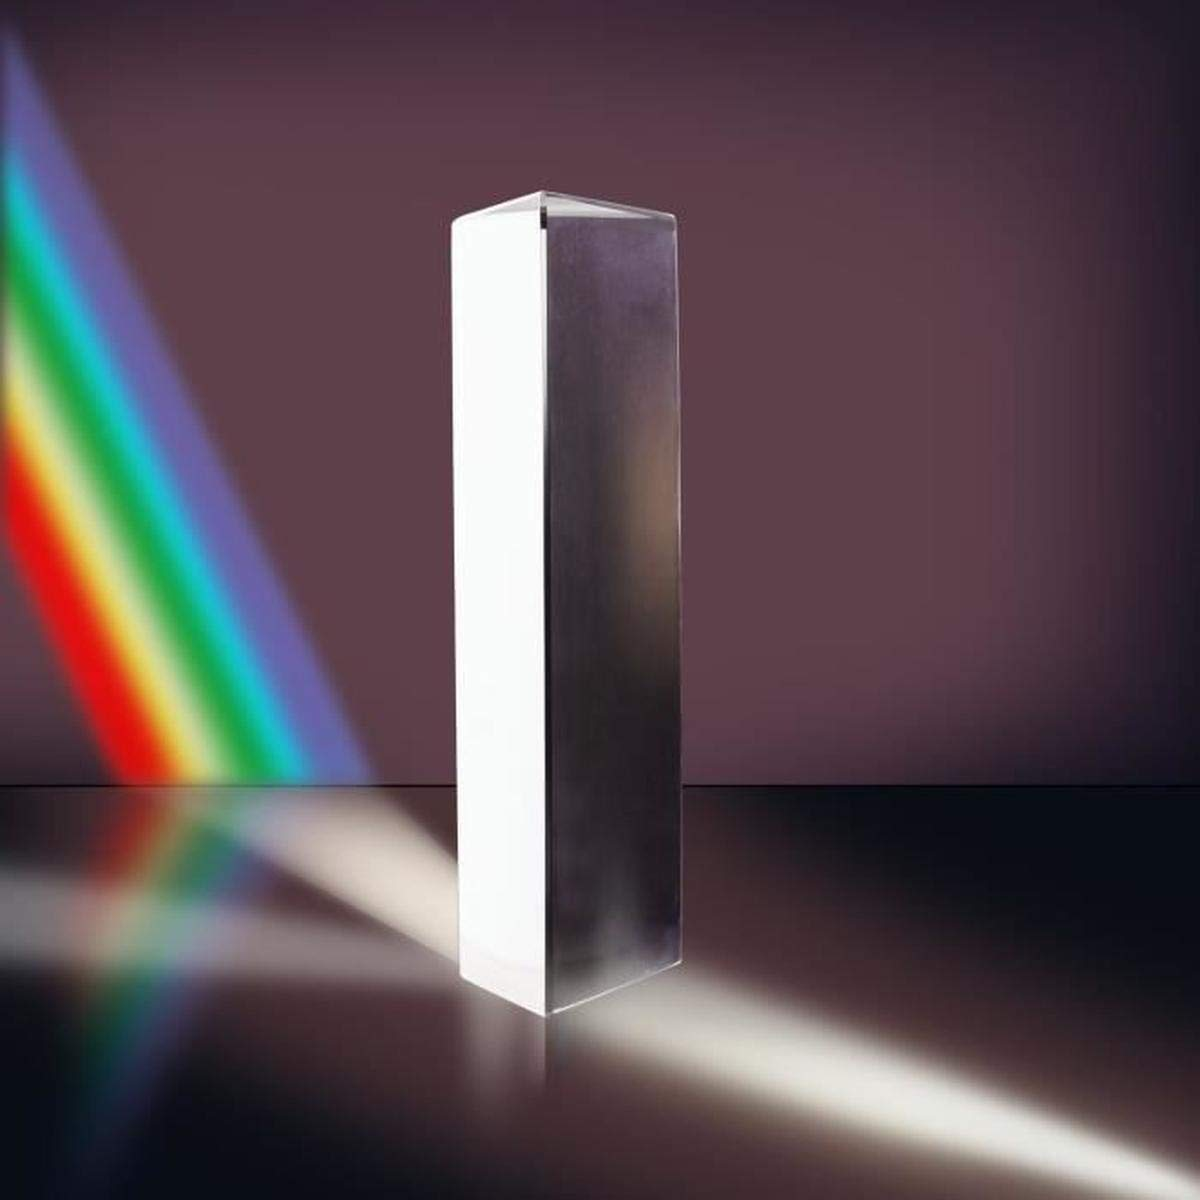 MerryNine 6'' Optical Glass Triangular Prism for Physics Teaching Light Spectrum, Photography, Rainbow Maker, Suncatchers, 150mm with Gift Box (150mm with Gift Box) by MerryNine